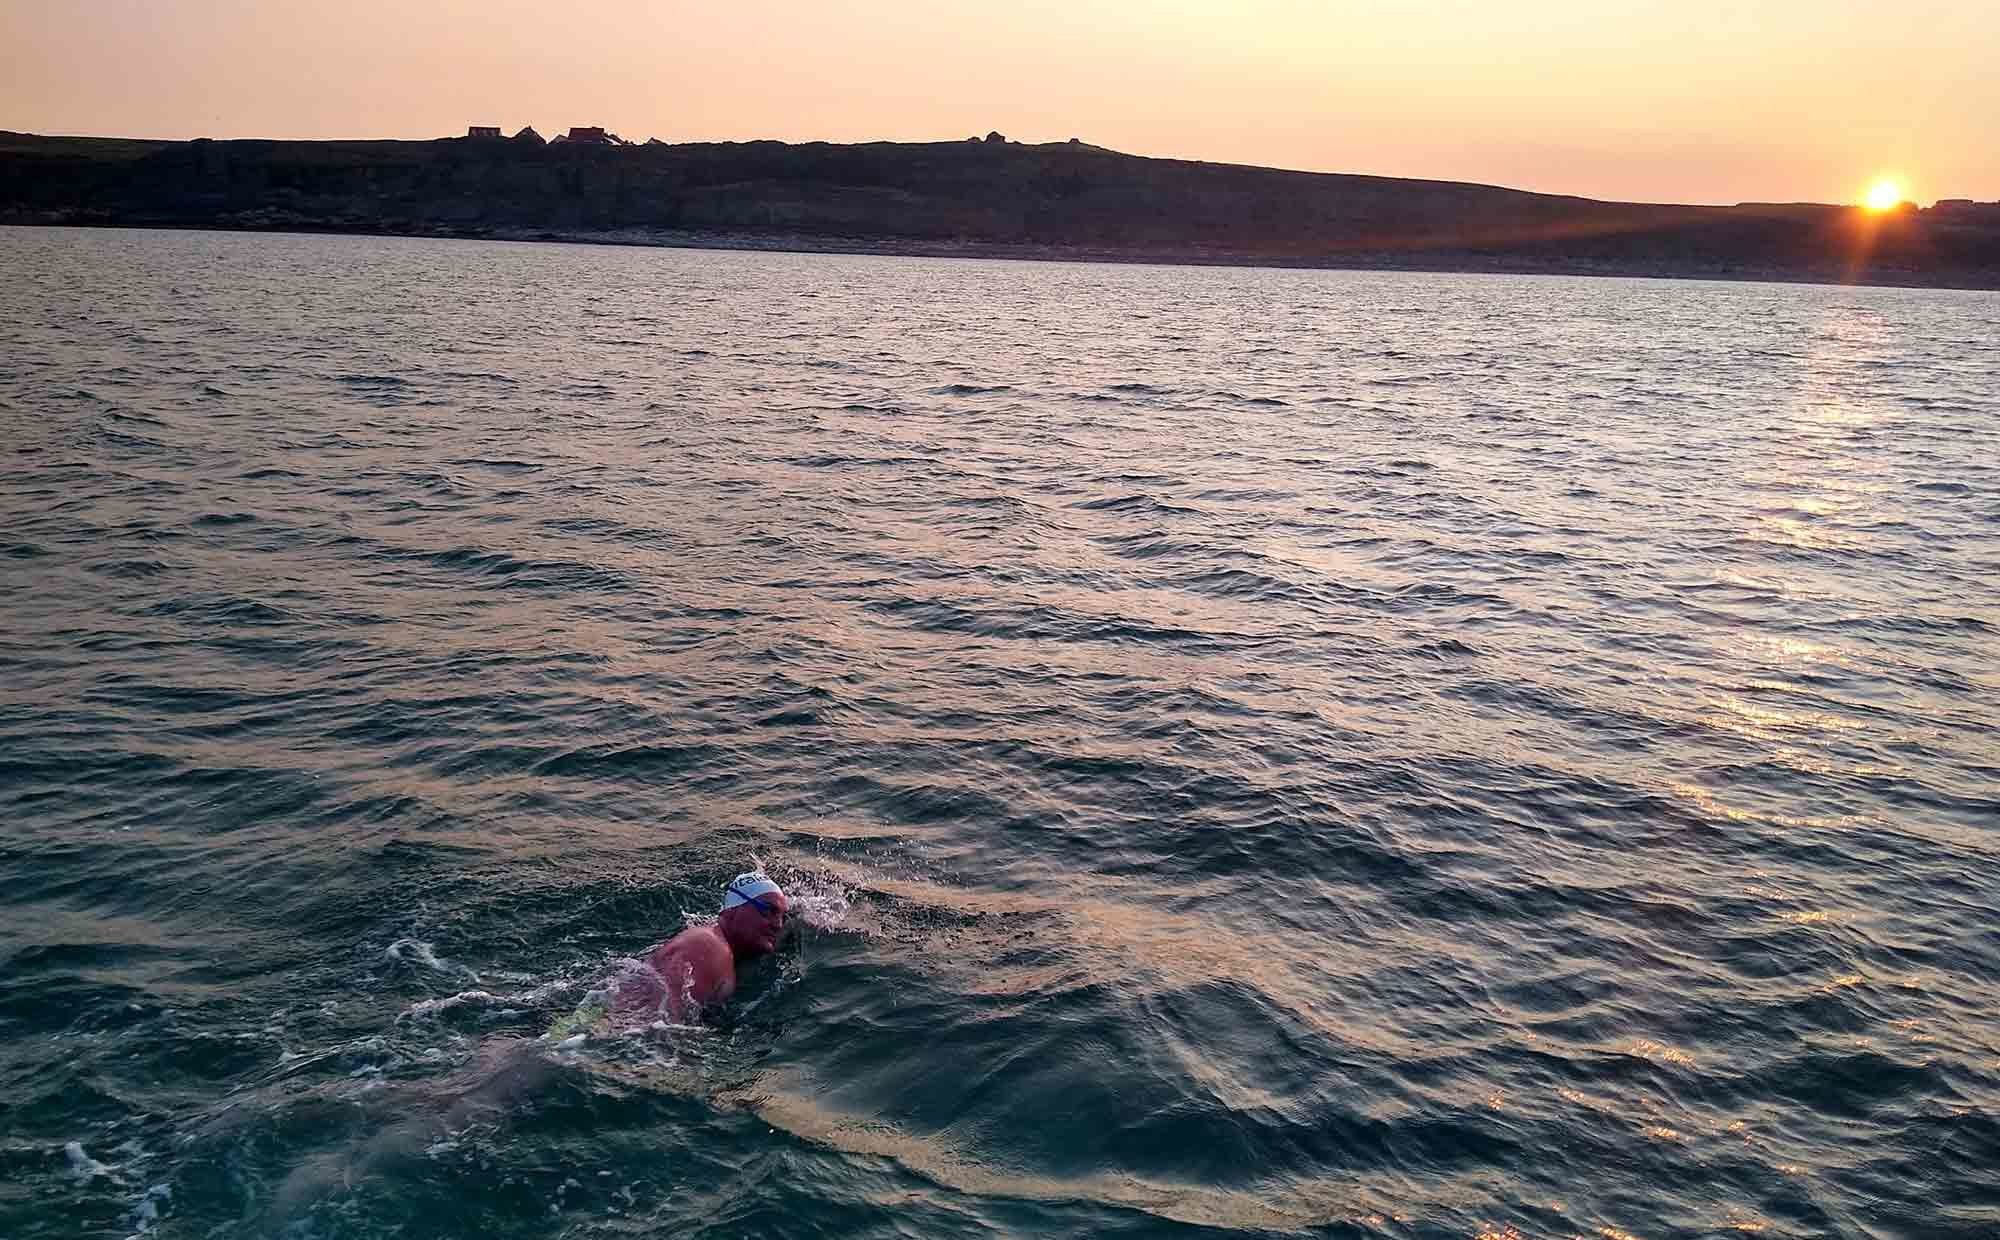 A dentist who braved a solo swim across the English Channel raised almost £7,000 for a dental charity